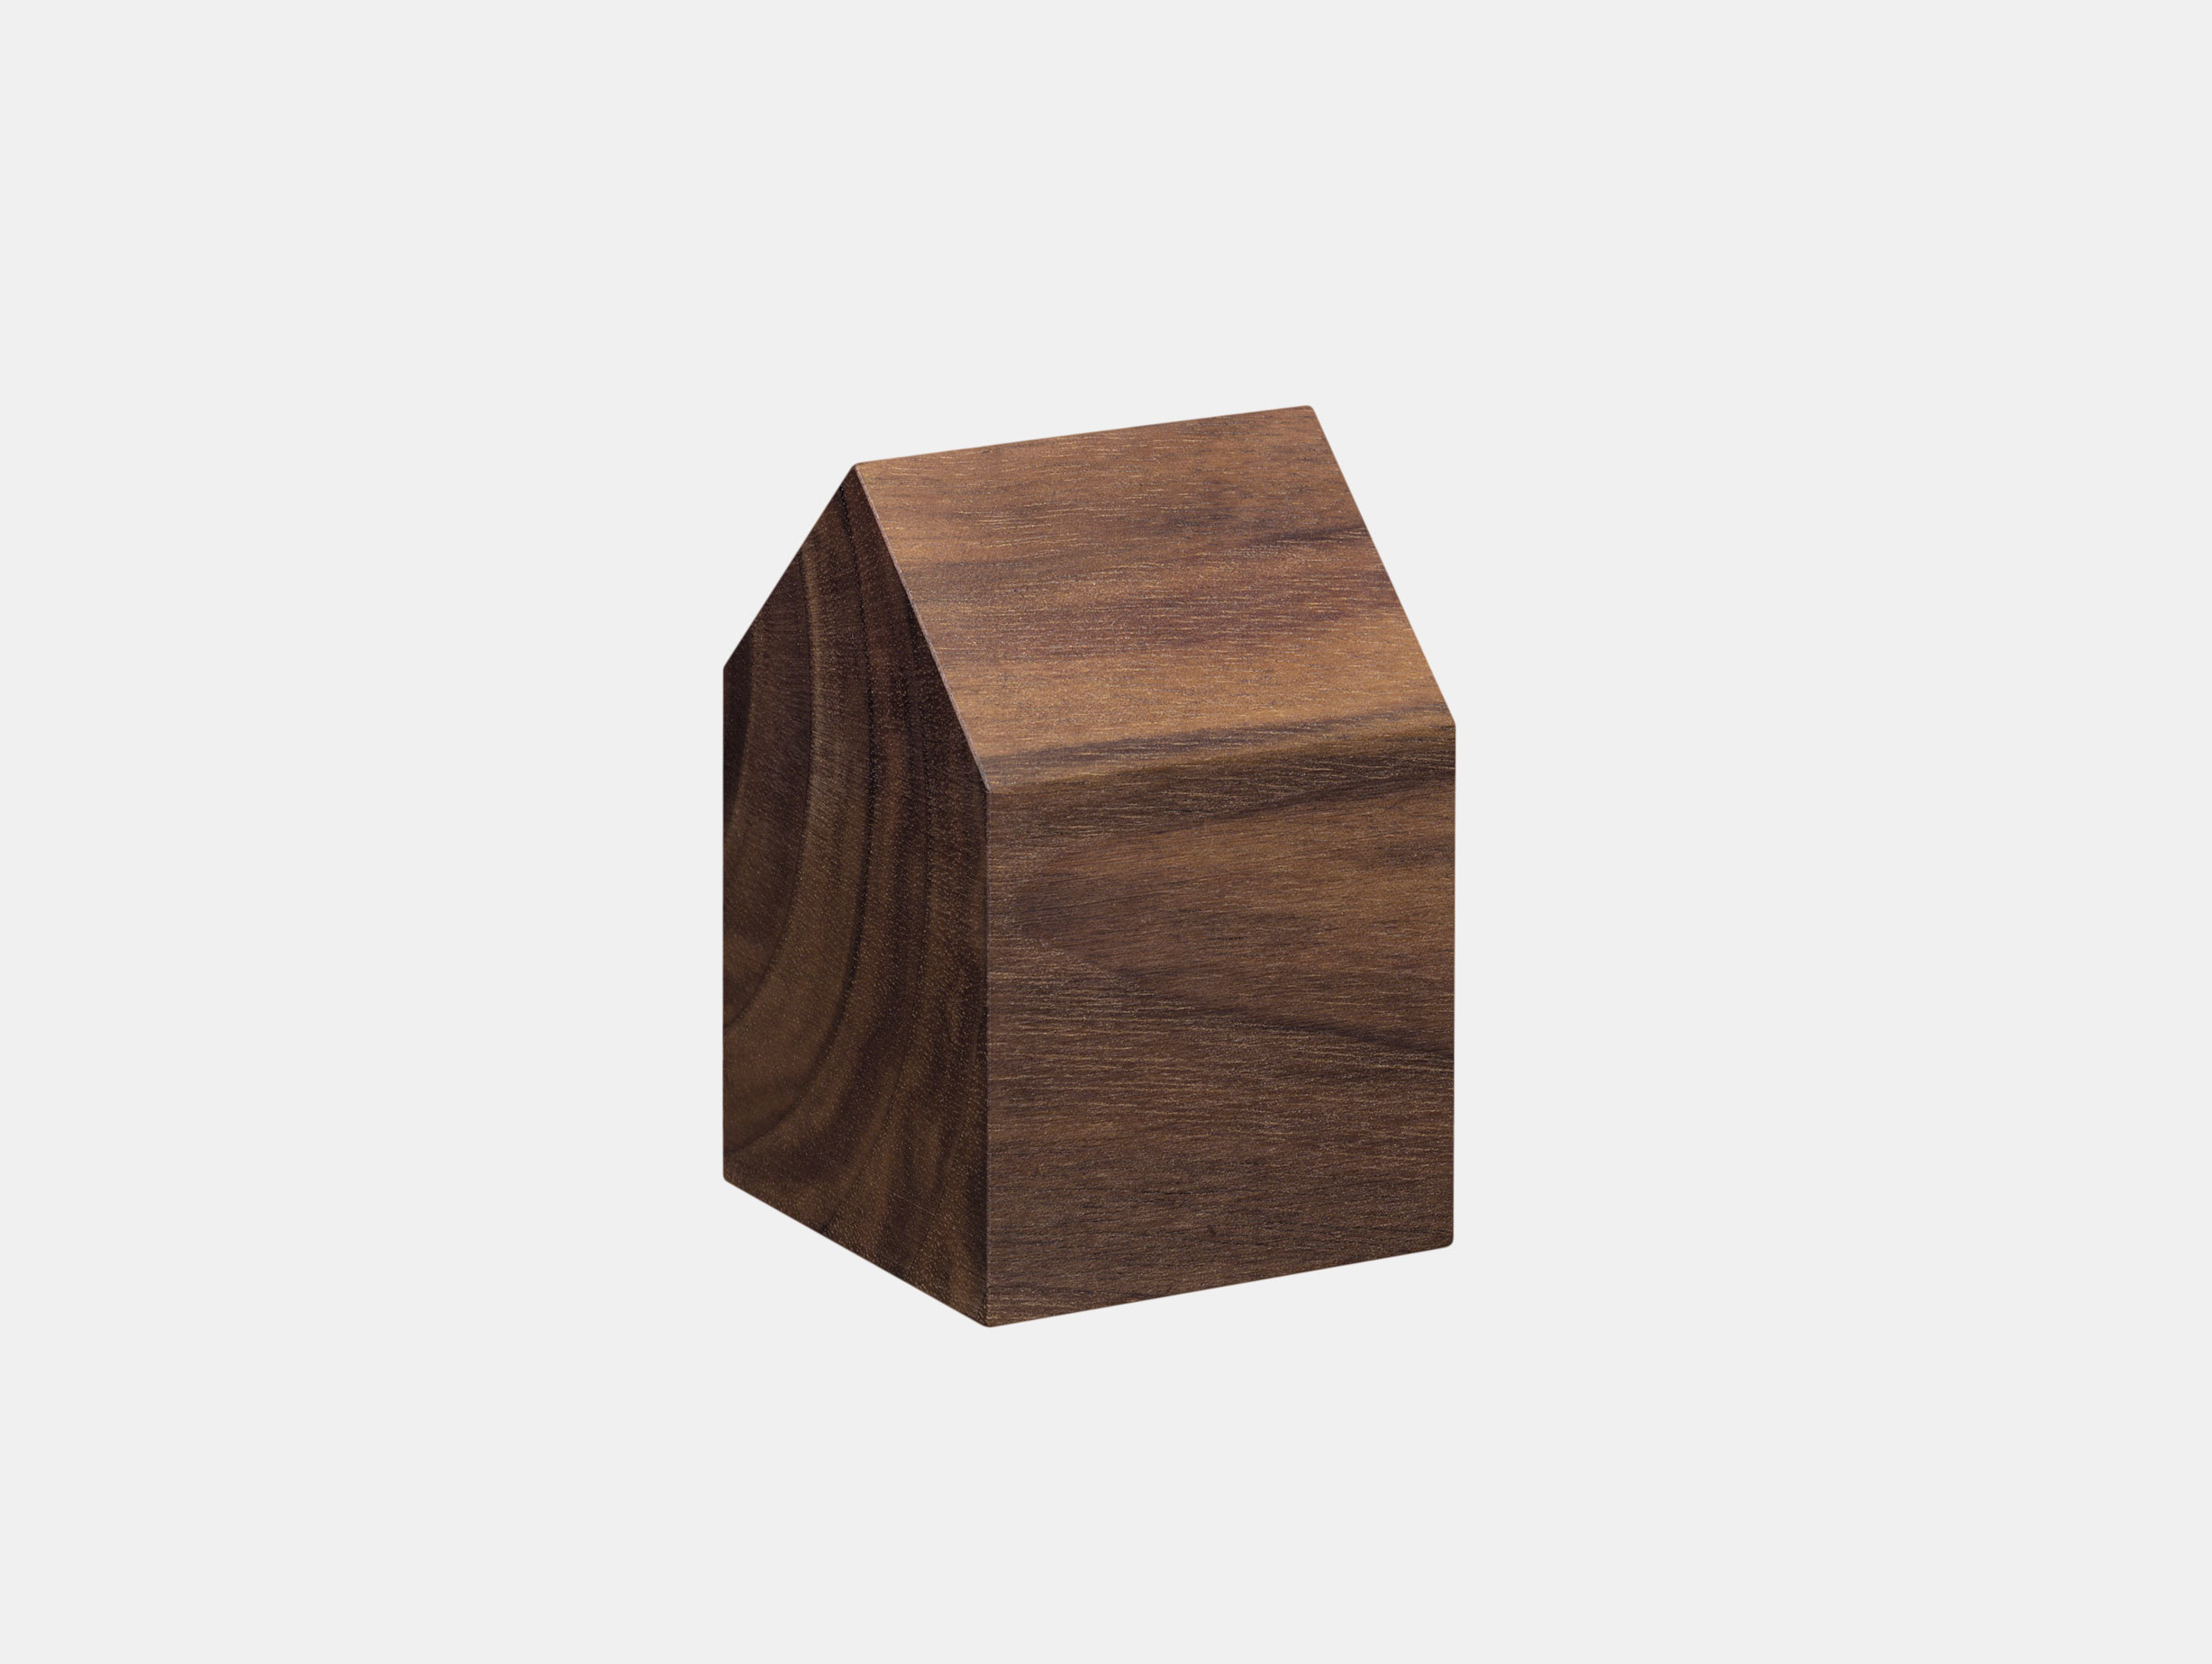 Haus Paperweight - Wood image 8